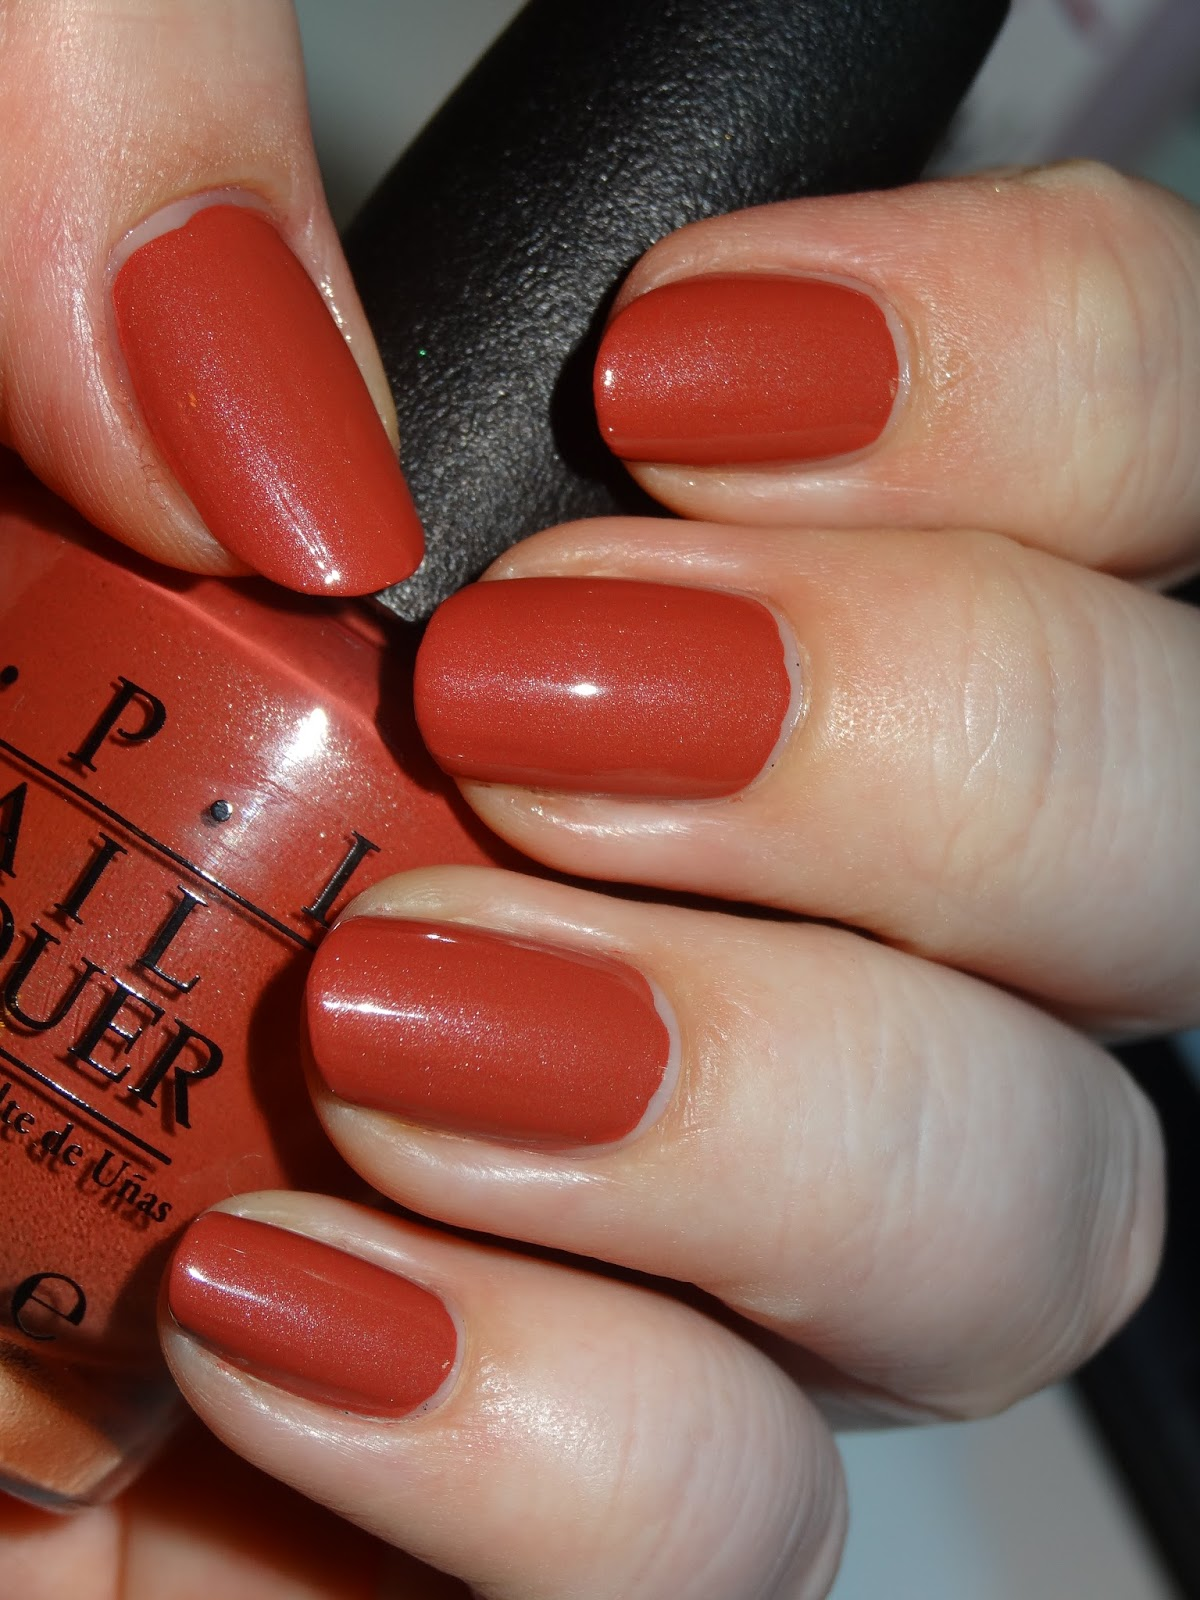 Polishlover opi schnapps out of it comic nail art this is opi schnapps out of it nl g22 from the fall 2012 german collection it is a terracotta creme polish leaning towards a coral shade and has a prinsesfo Image collections